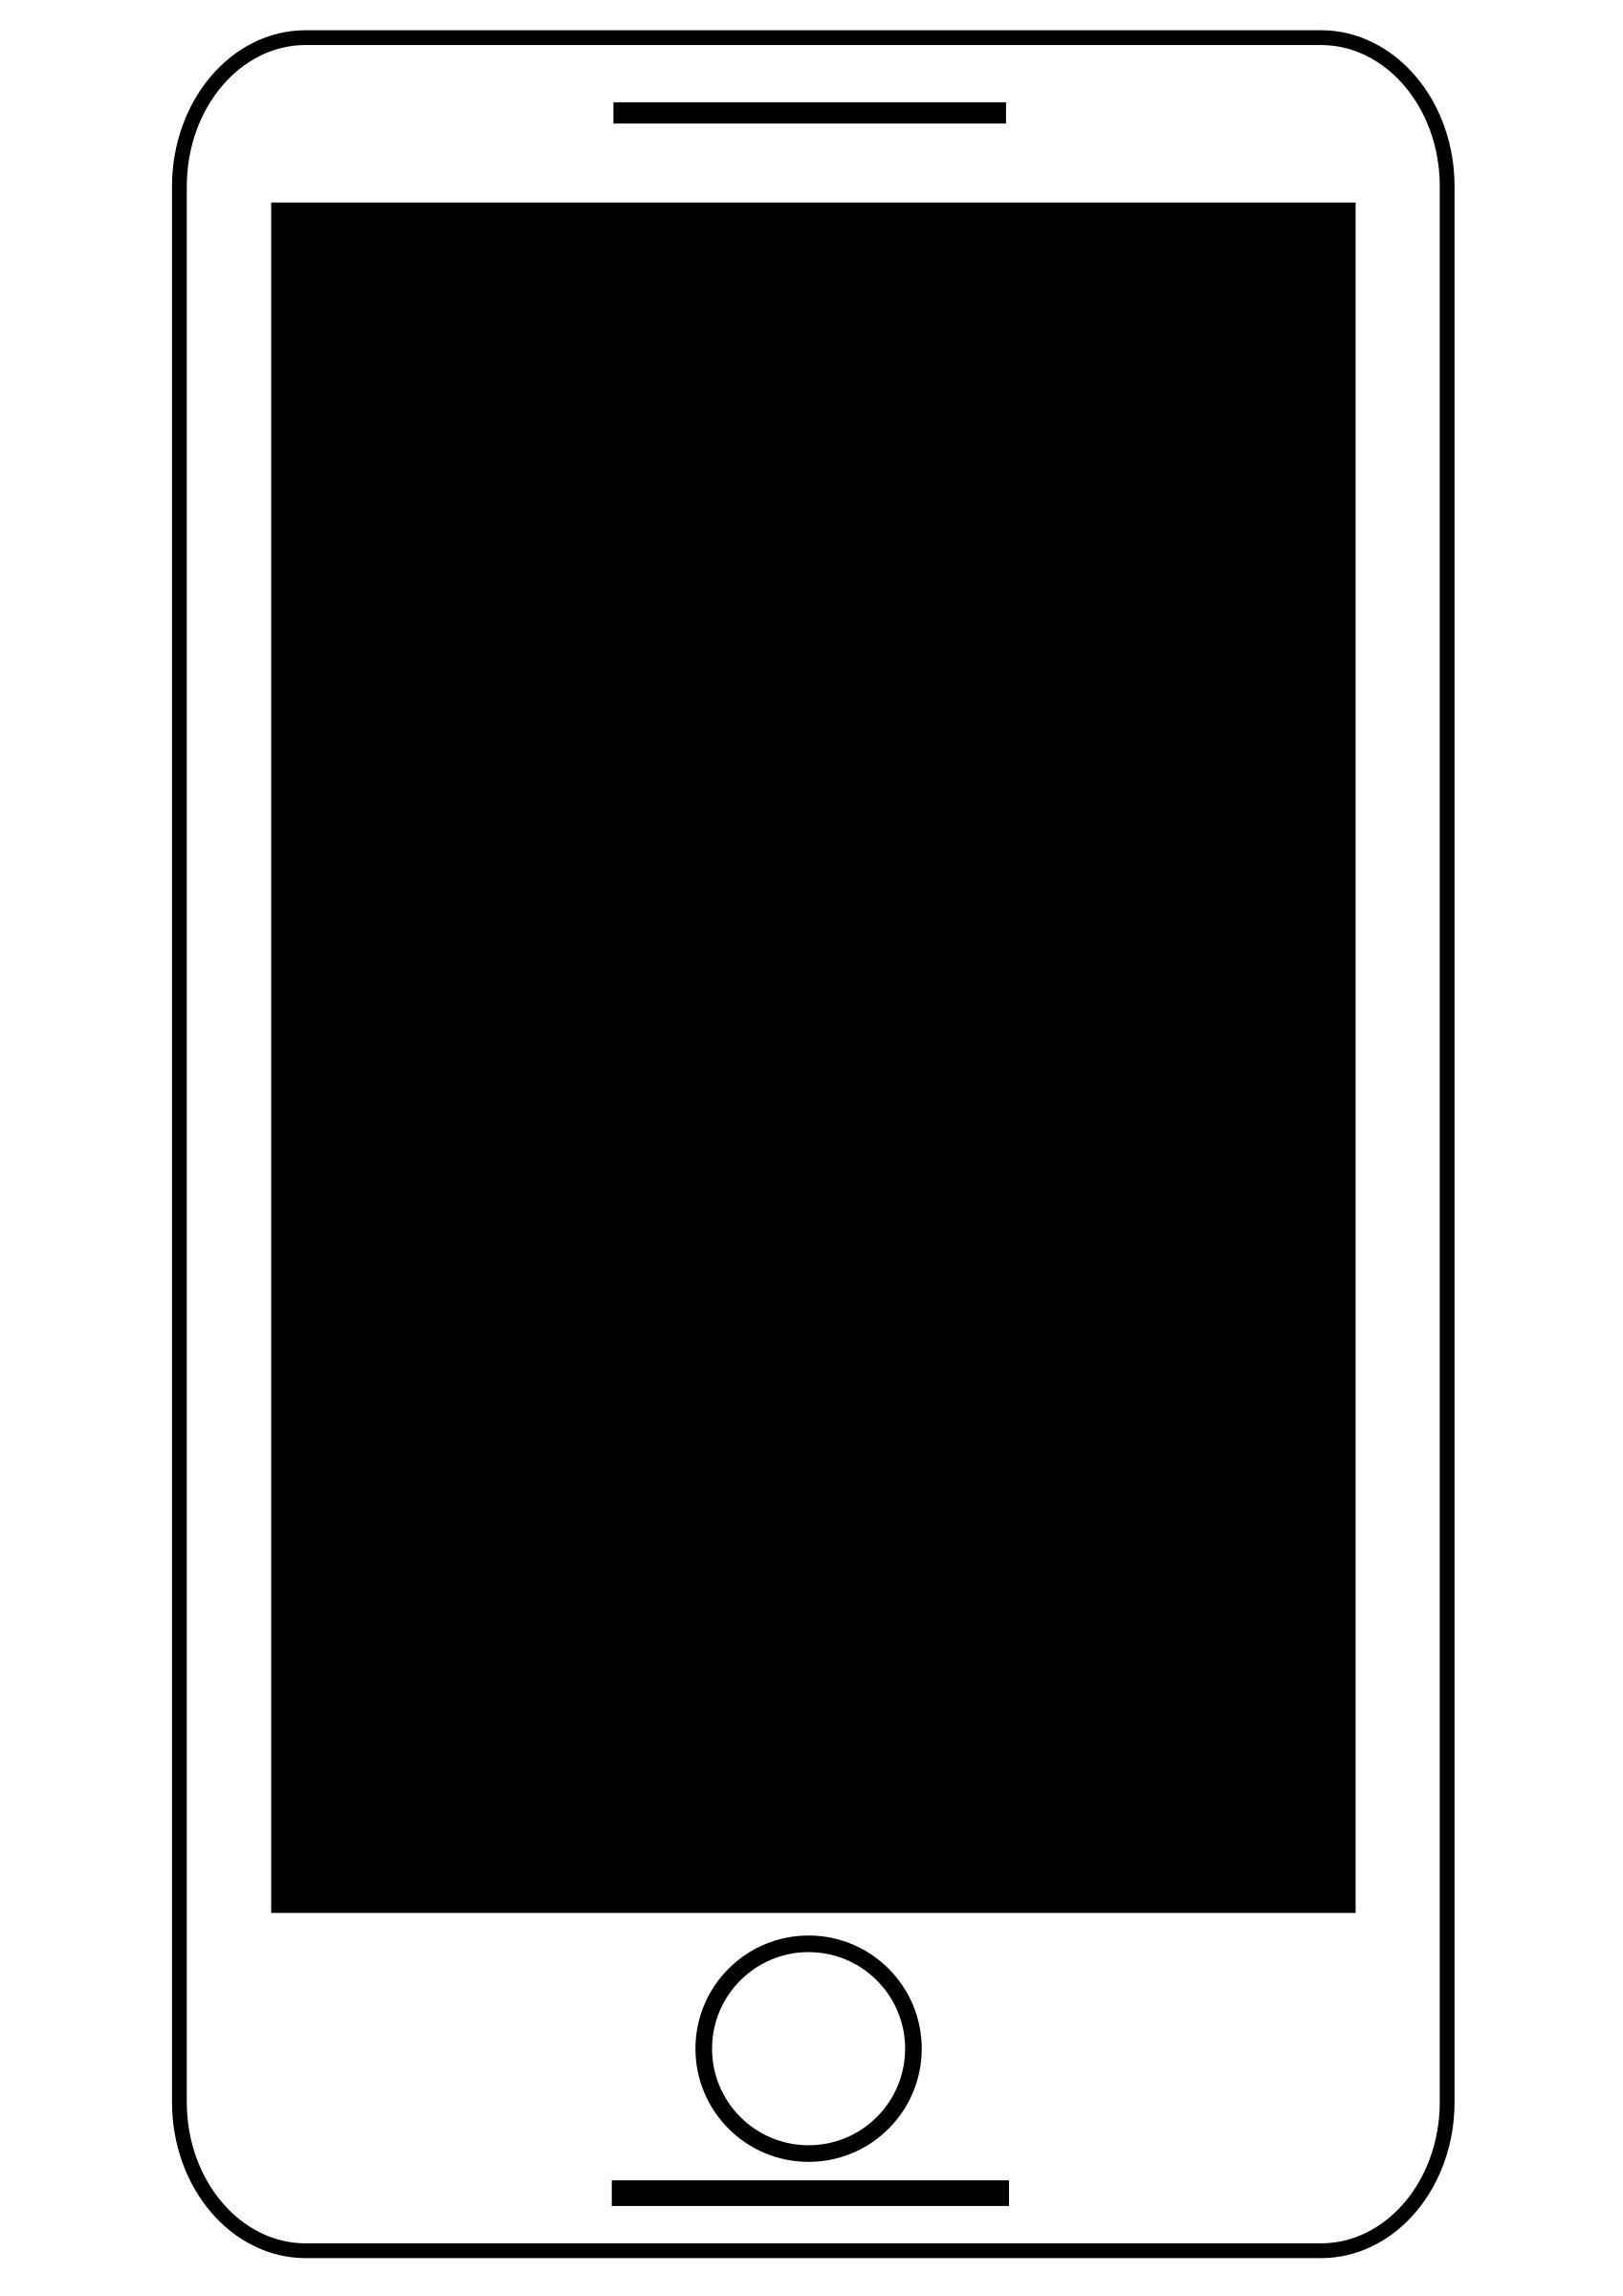 Cellphone clipart animated, Cellphone animated Transparent.